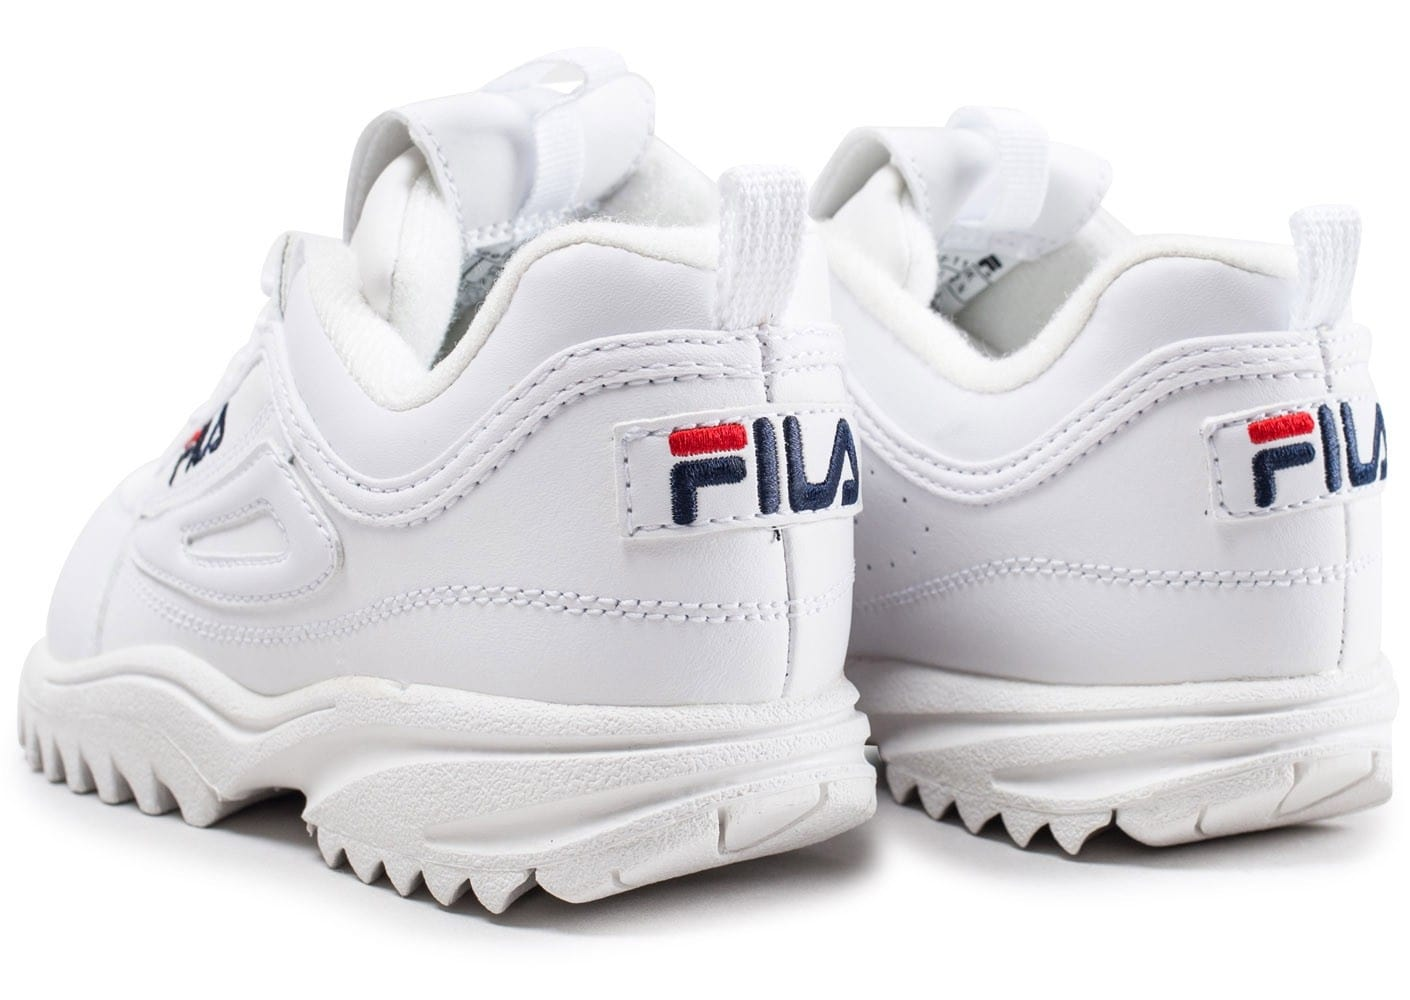 5a7ba7373349aa Fila Disruptor 2 enfant blanche - Chaussures Enfant - Chausport